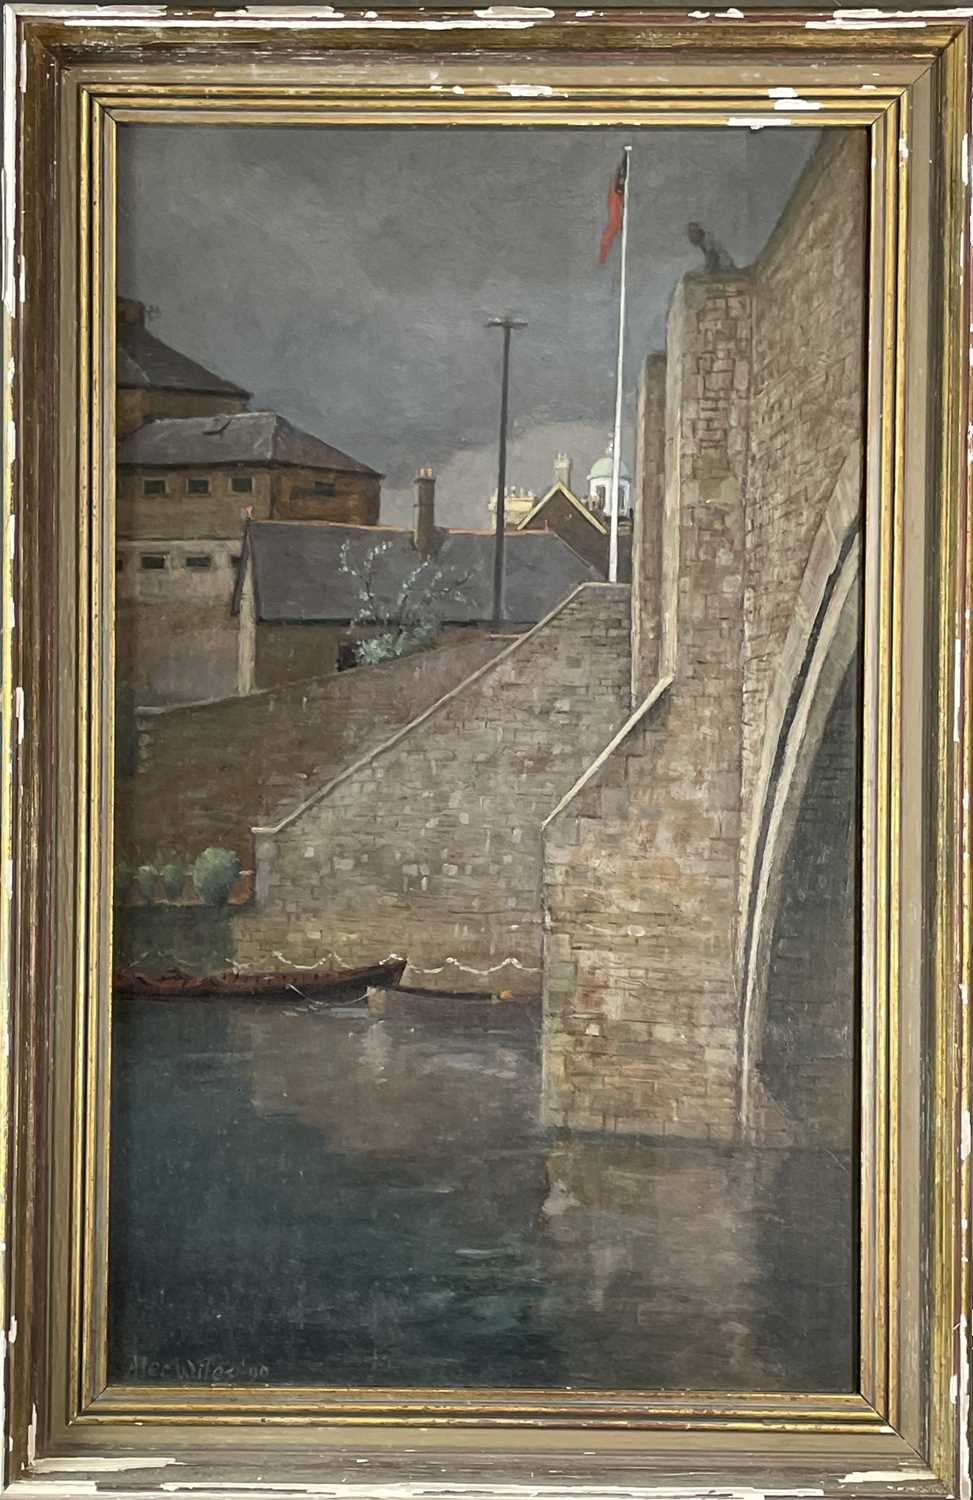 Alec WILES (1924) City Bridge Oil on board Signed and dated '90 59x35cm - Image 2 of 3